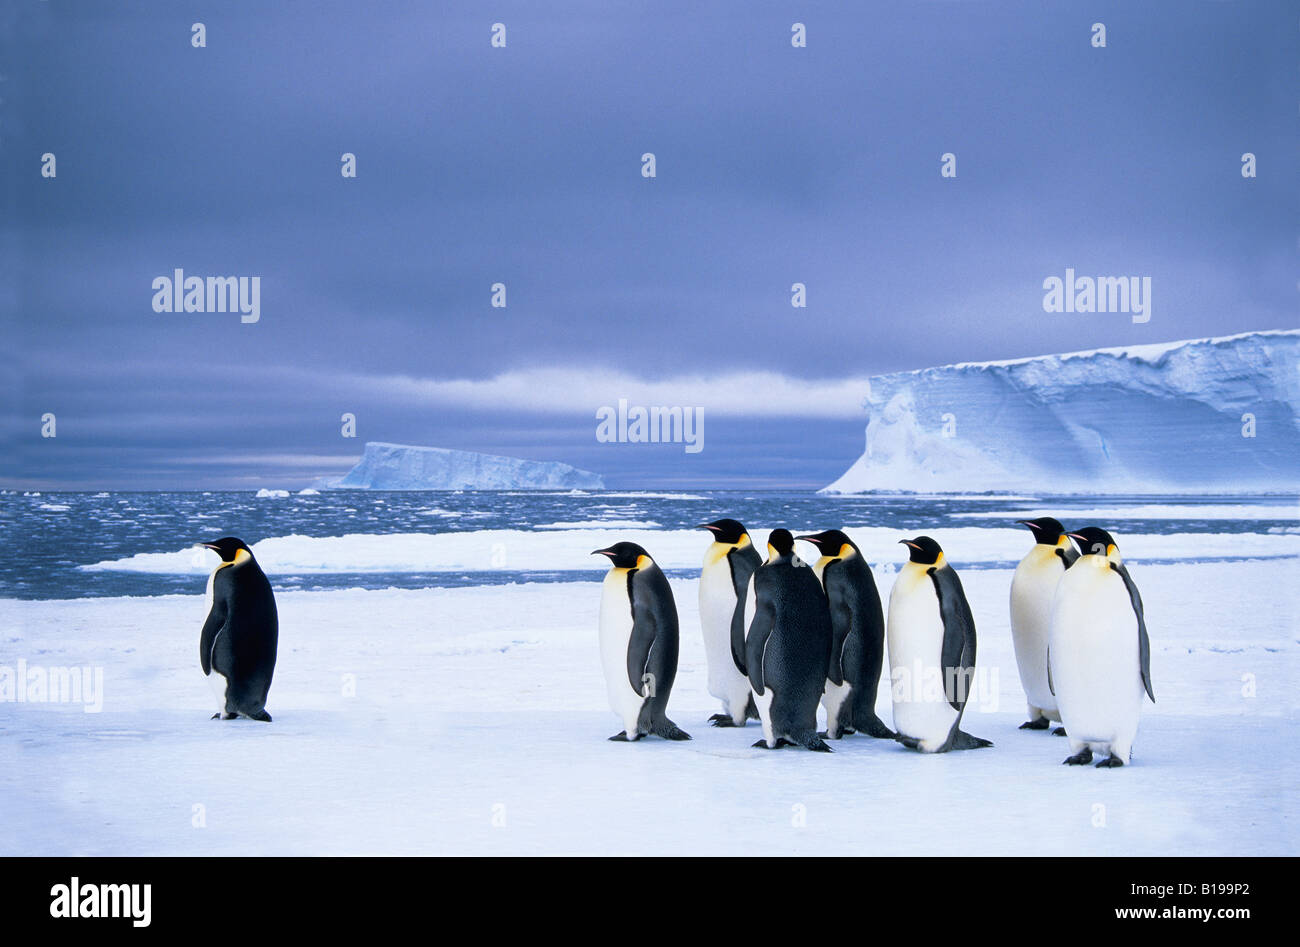 Emperor penguins (Aptenodytes forsteri) wait at the edge of the pack ice in preparation for a foraging journey out - Stock Image